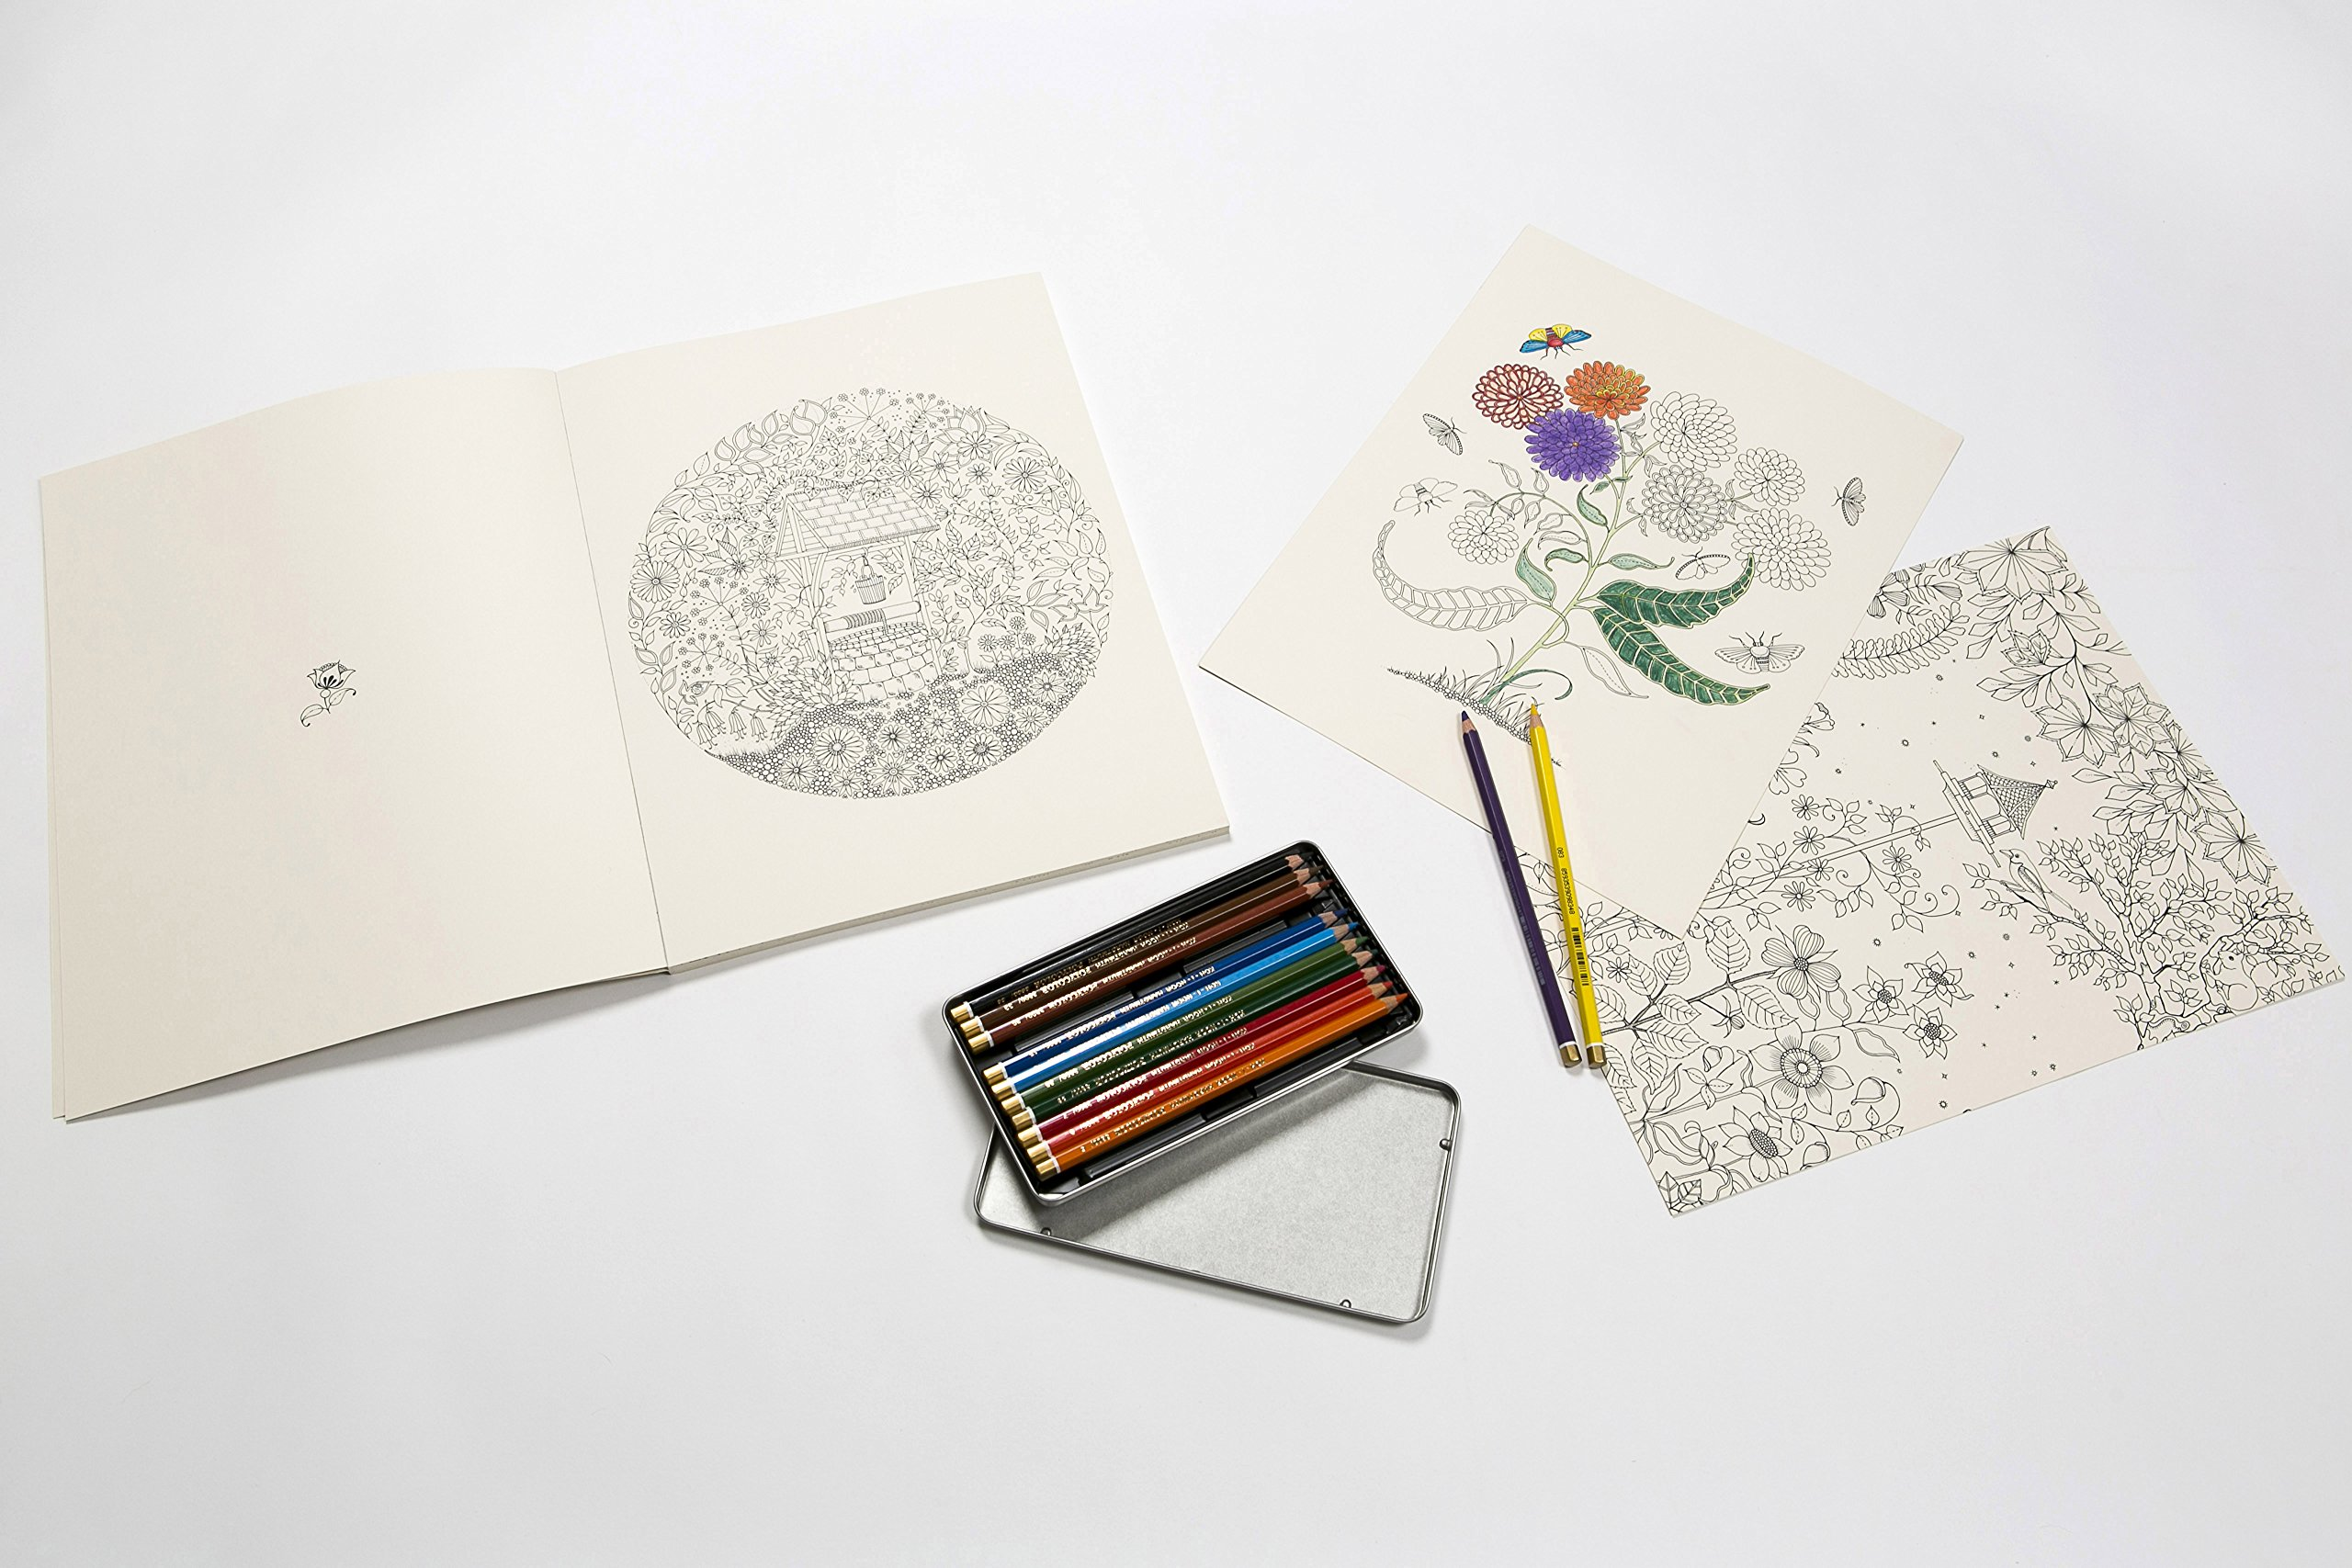 Secret Garden Artists Edition 20 Drawings To Color And Frame Amazoncouk Johanna Basford 9781780677316 Books